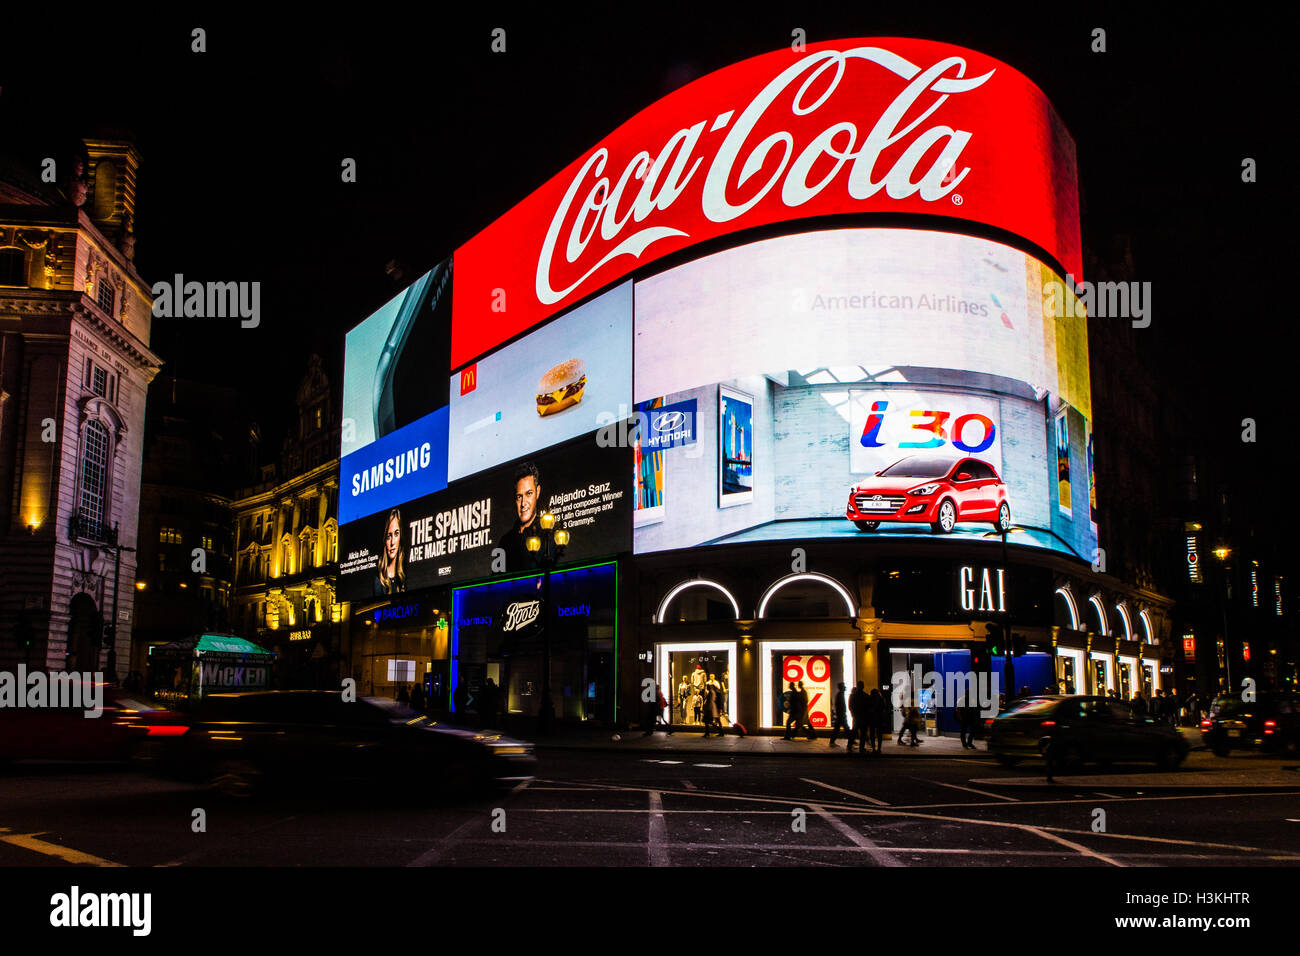 Piccadilly Circus London prior to renovation 2016 - Stock Image